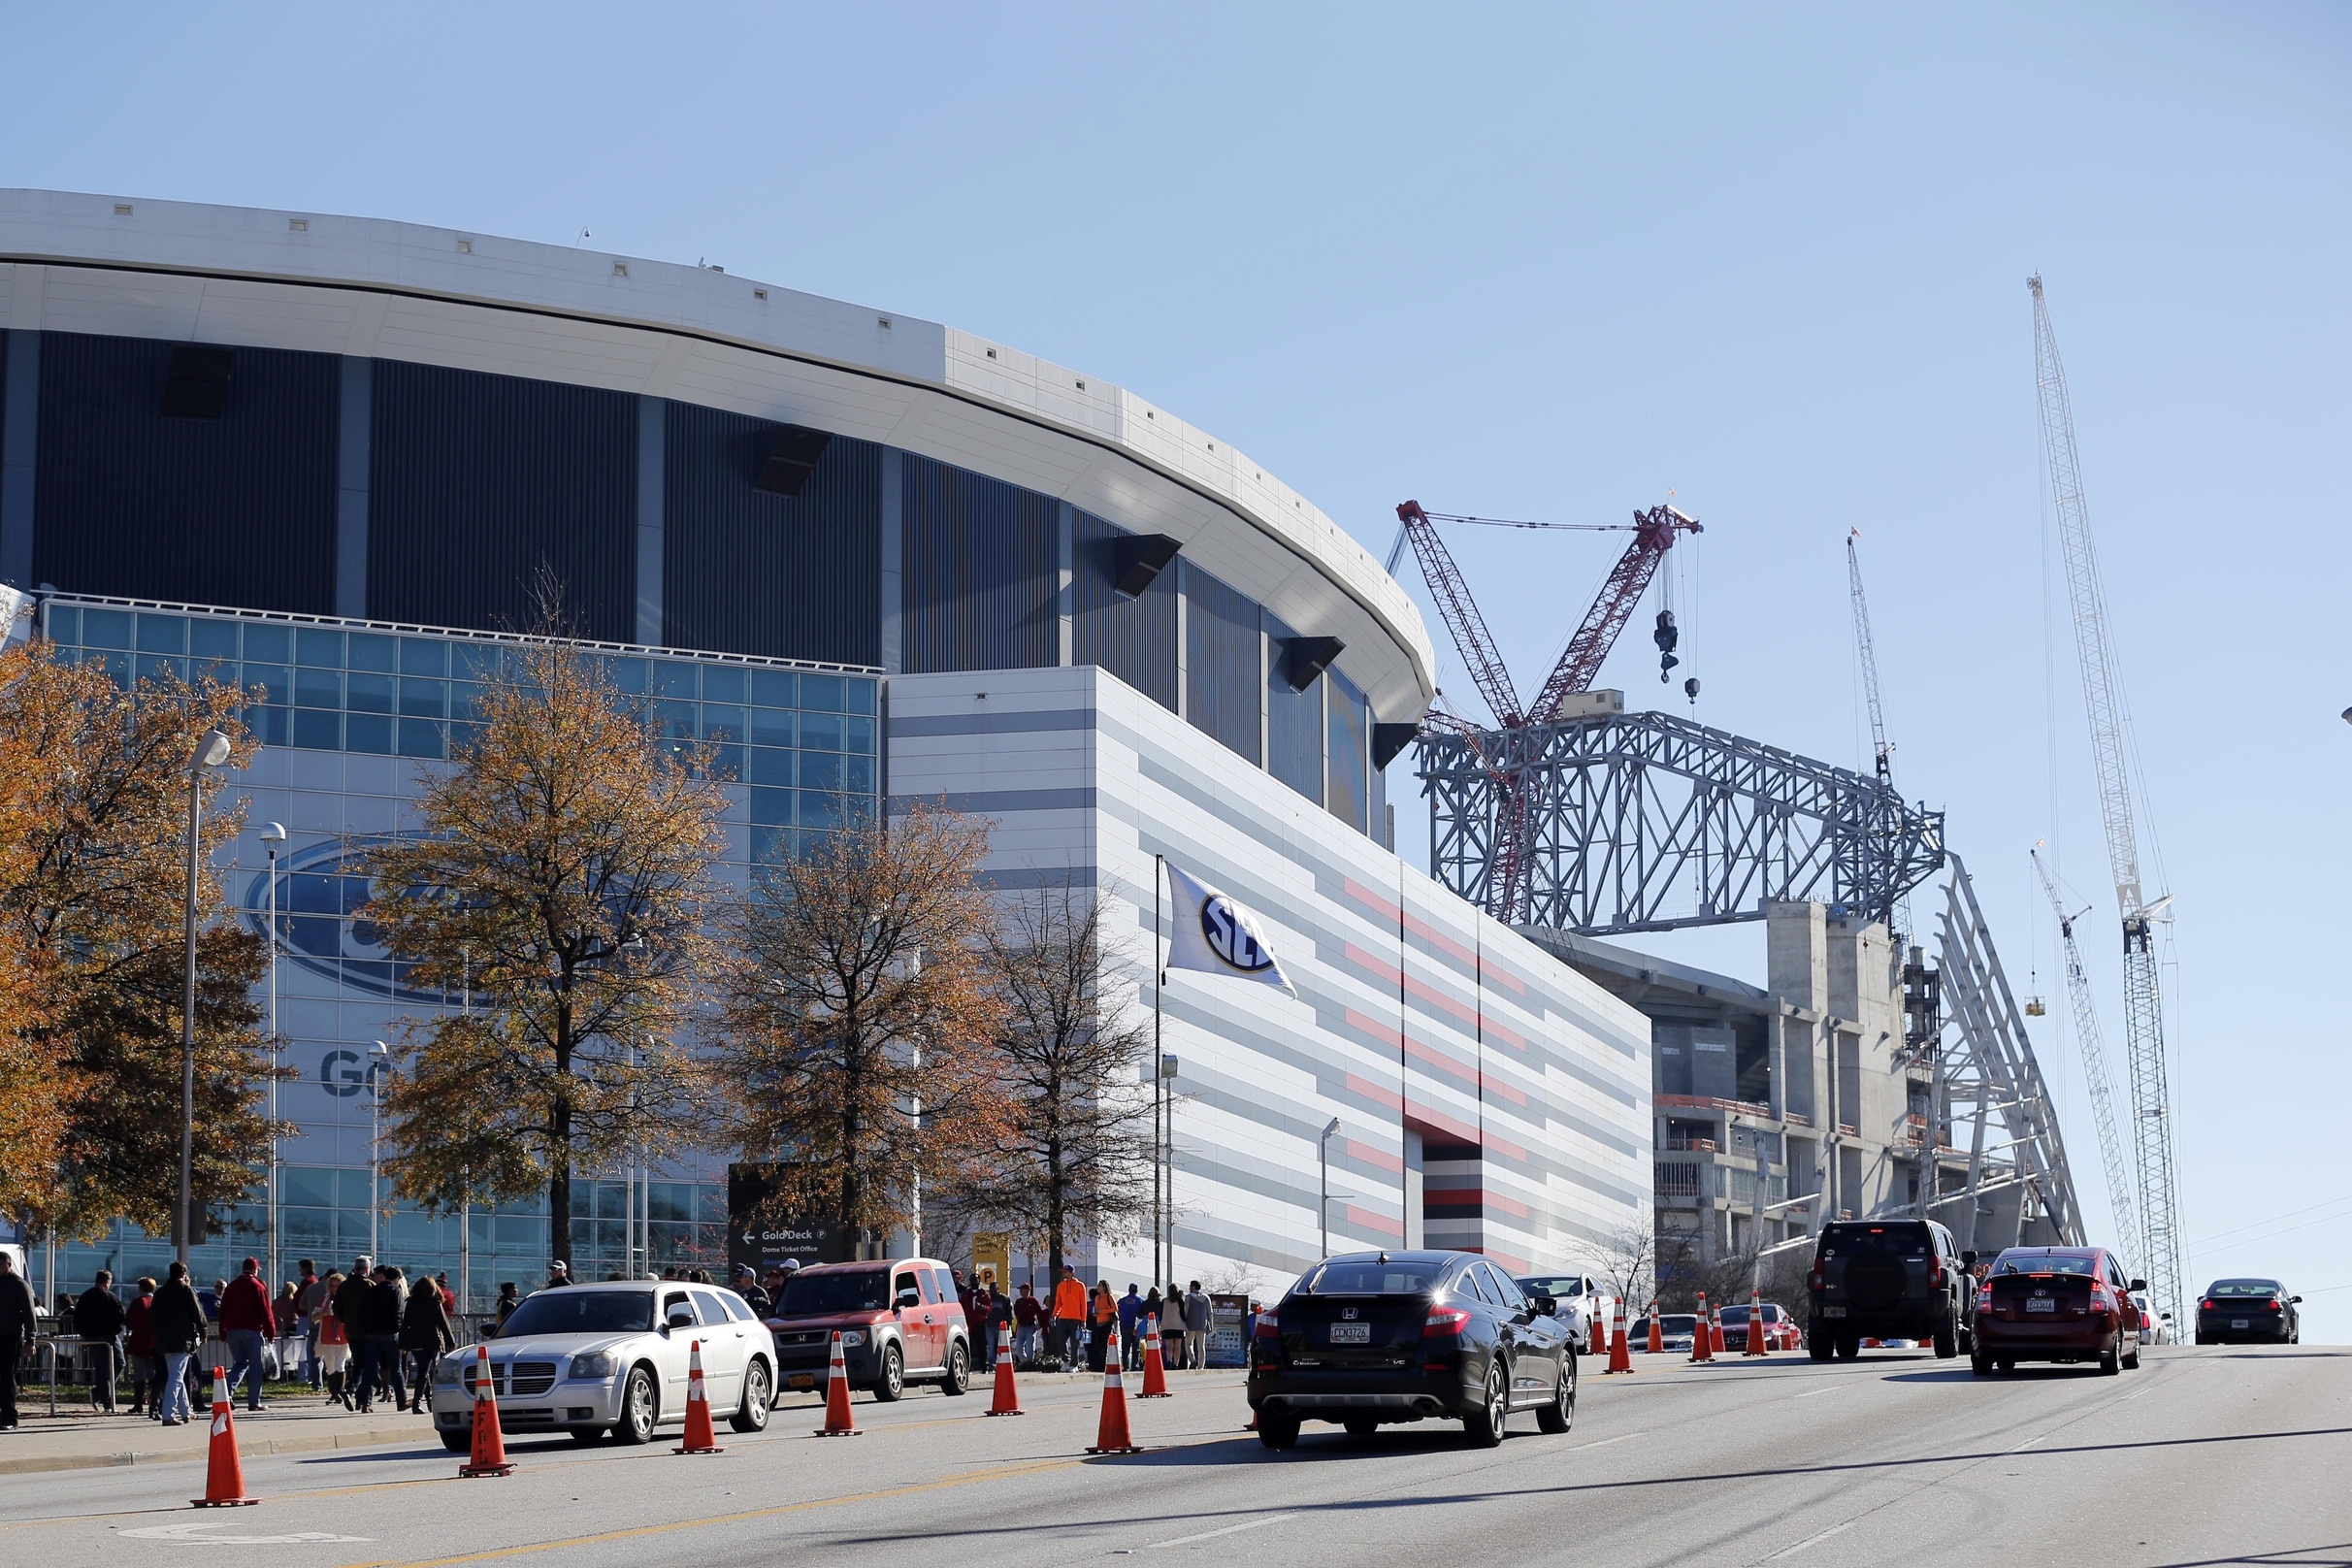 Georgia Dome scheduled to be imploded on November 20, 2017